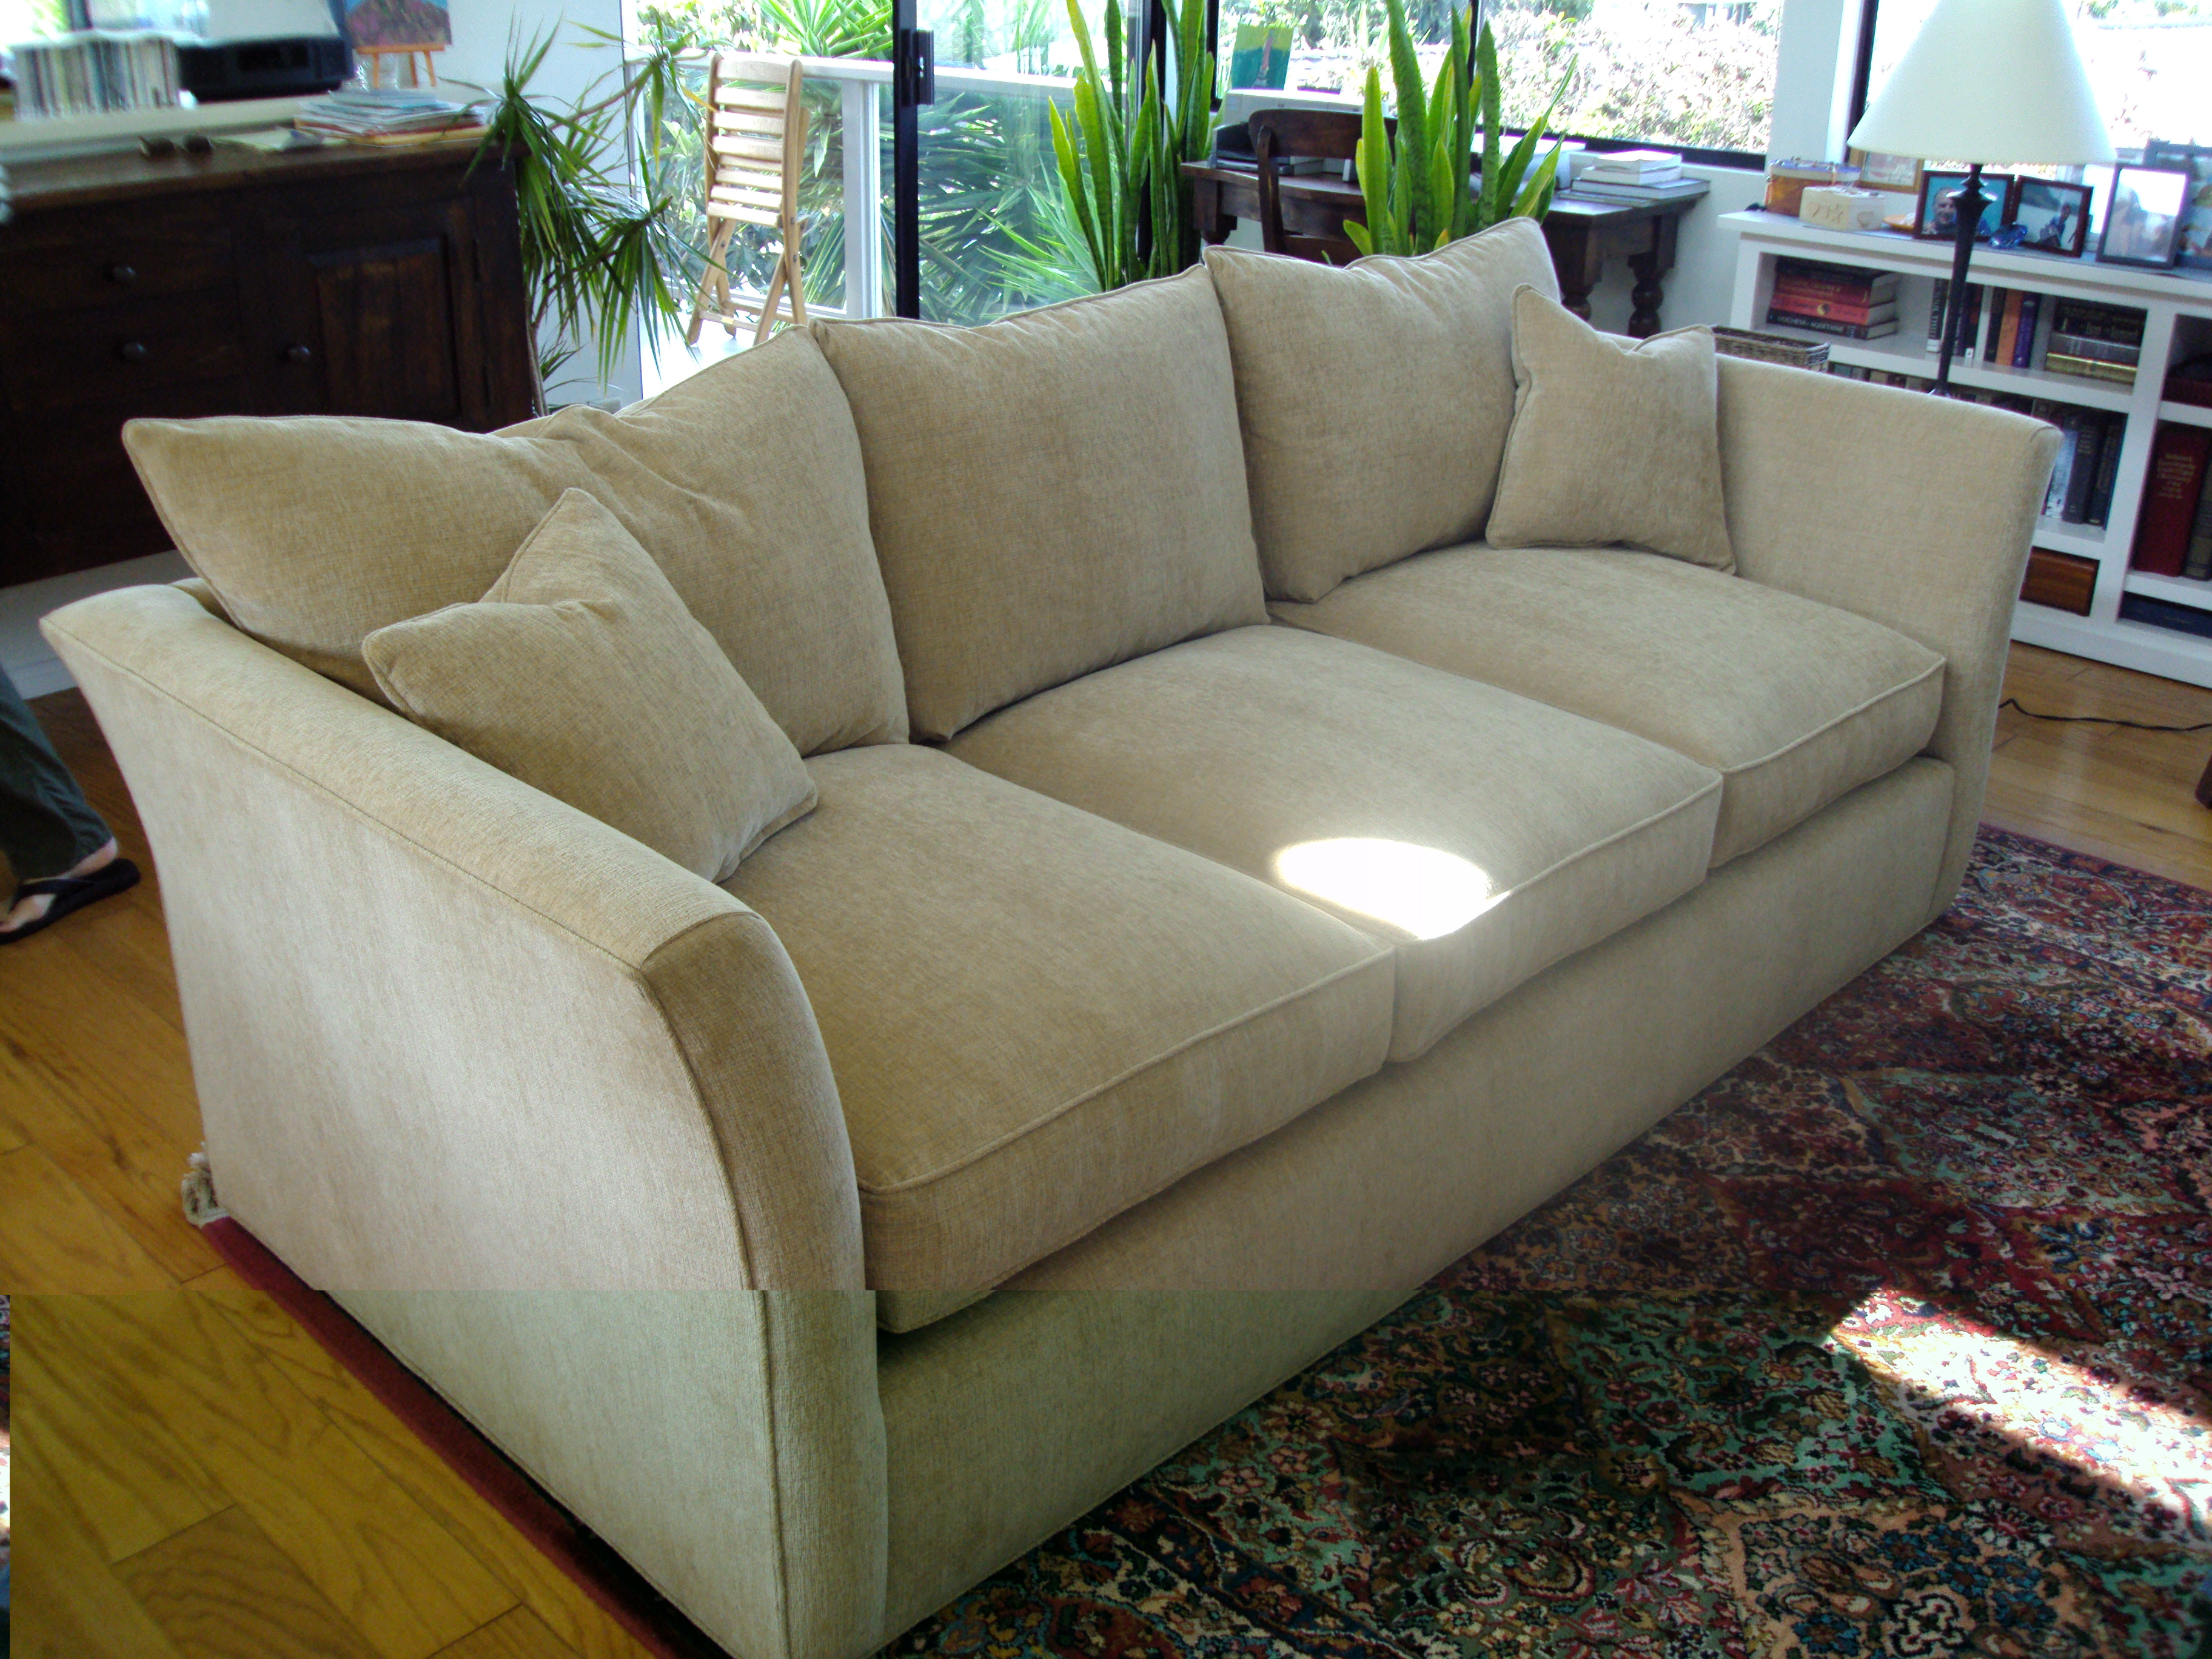 Studio City CA Restoration Reupholstery Custom Furniture Upholstery